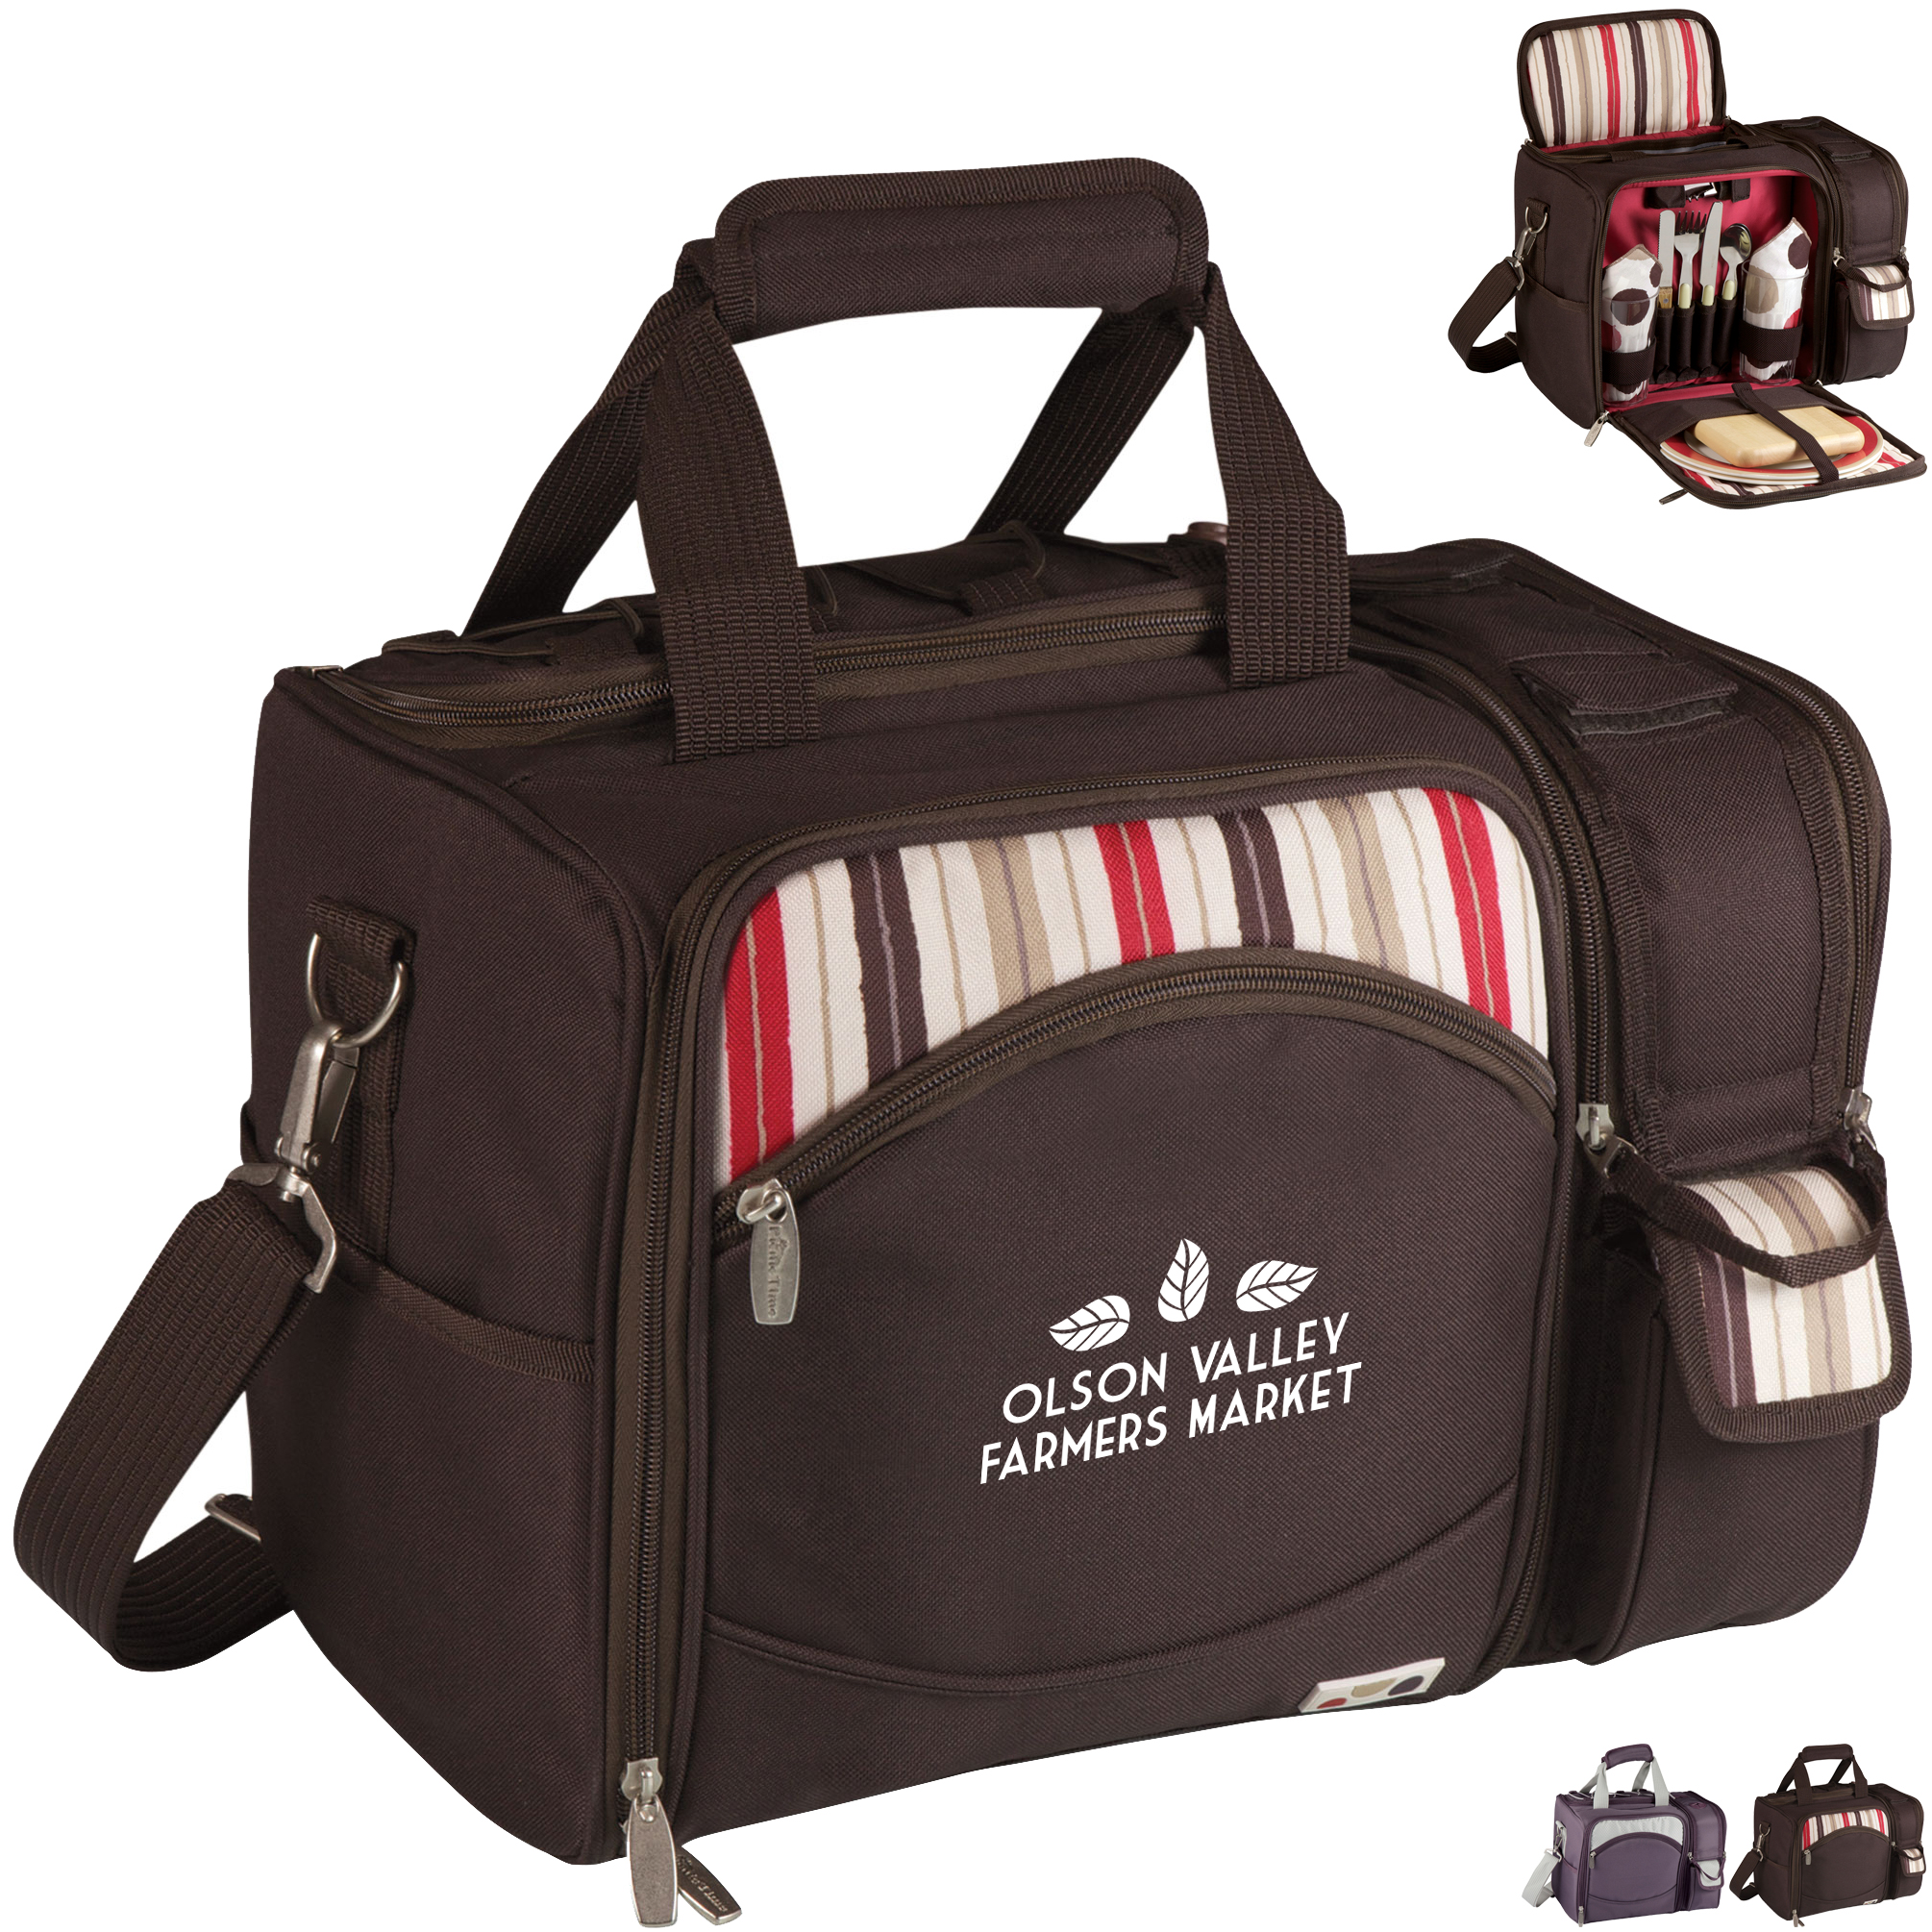 Malibu Picnic Cooler Set - Fashion Colors